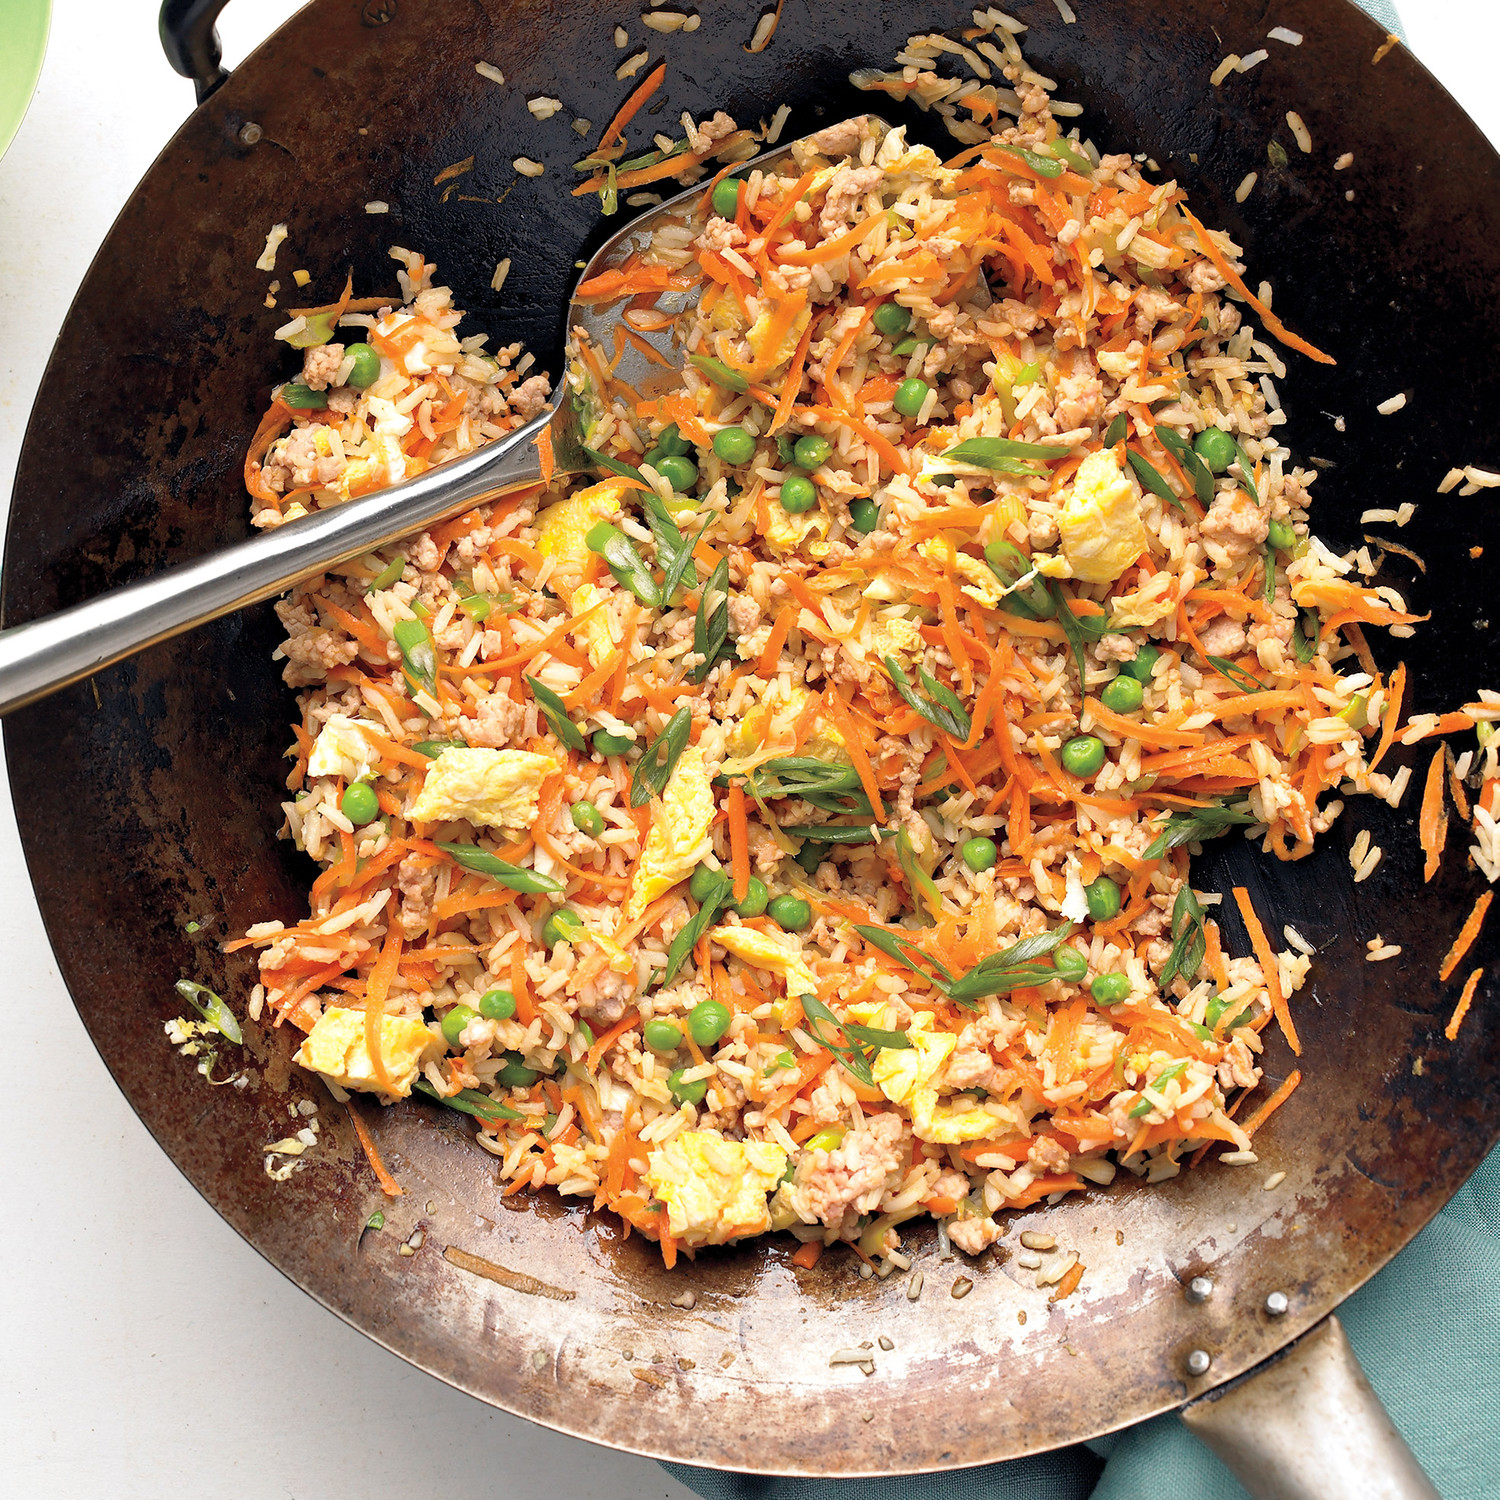 Pork fried rice recipe video martha stewart forumfinder Image collections